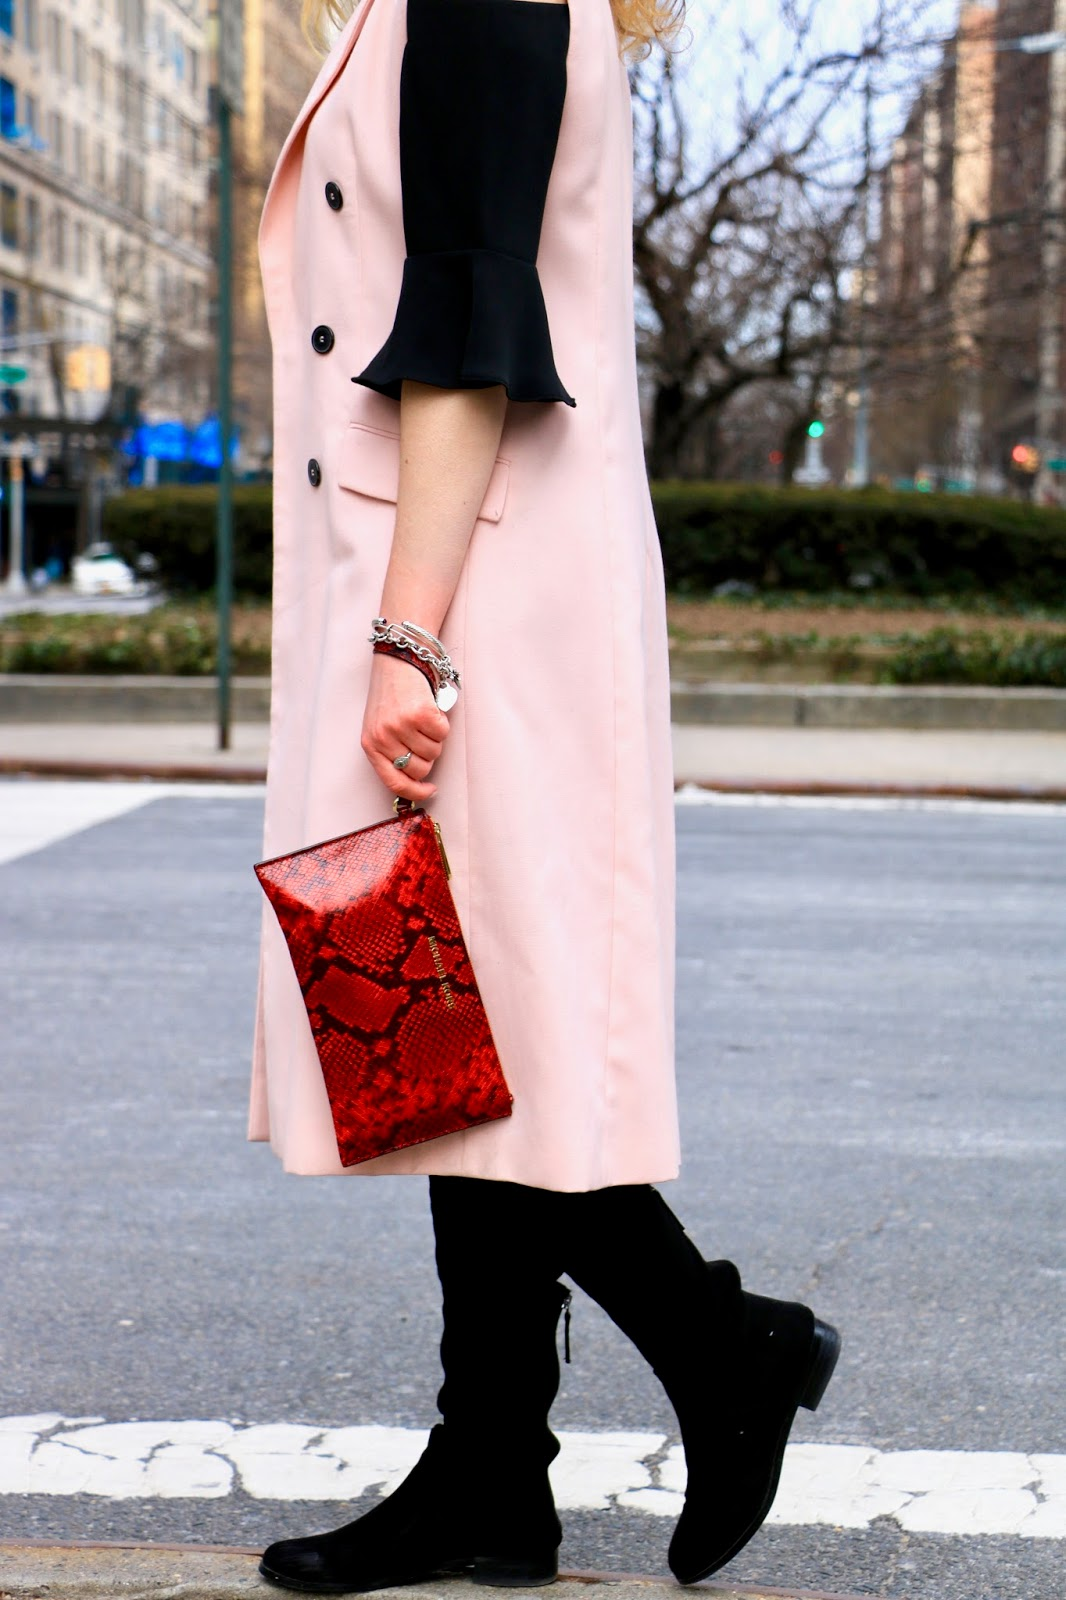 Nyc fashion blogger Kathleen Harper shows how to wear over-the-knee boots